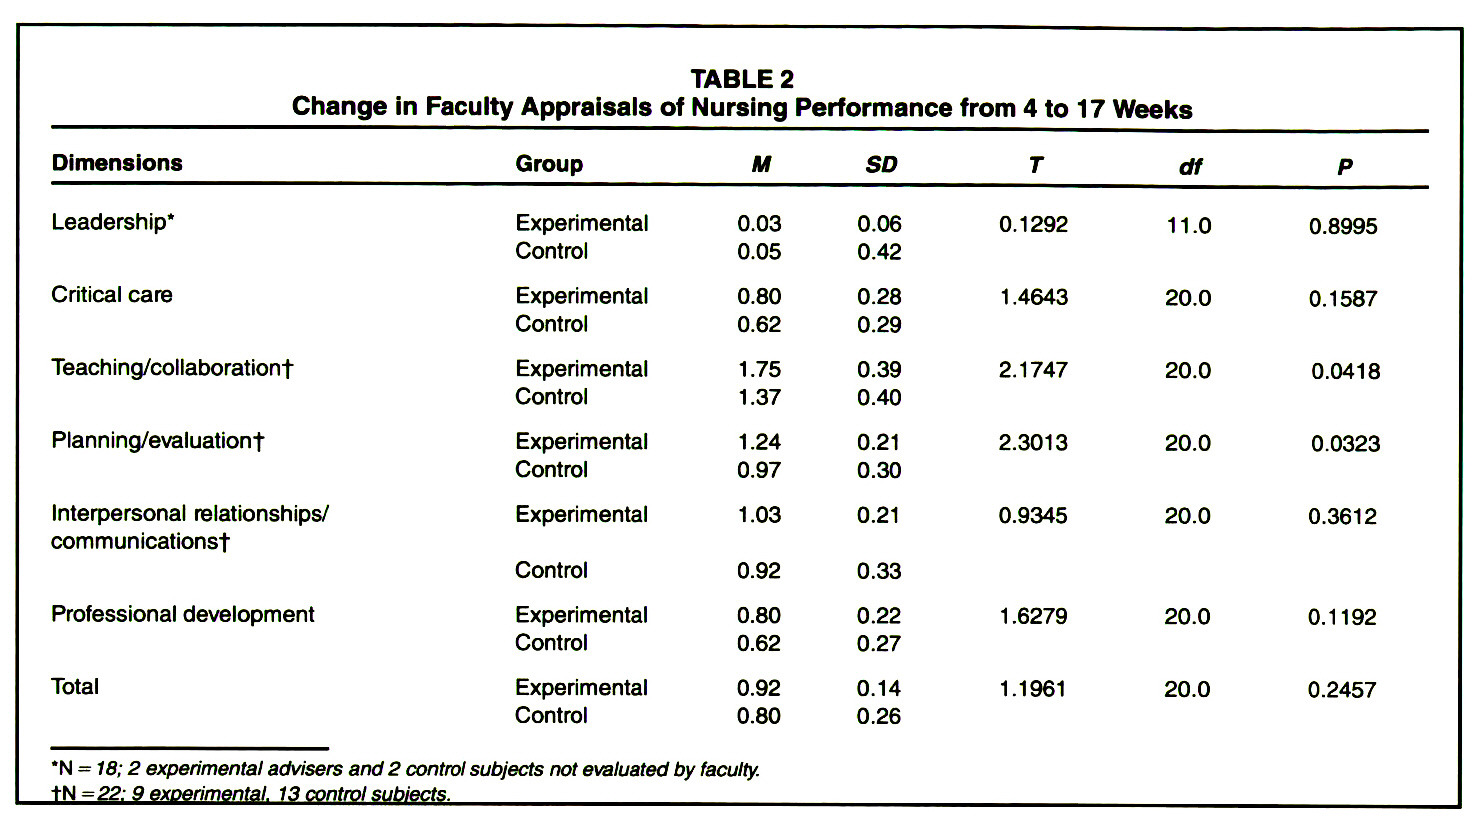 TABLE 2Change in Faculty Appraisals of Nursing Performance from 4 to 17 Weeks